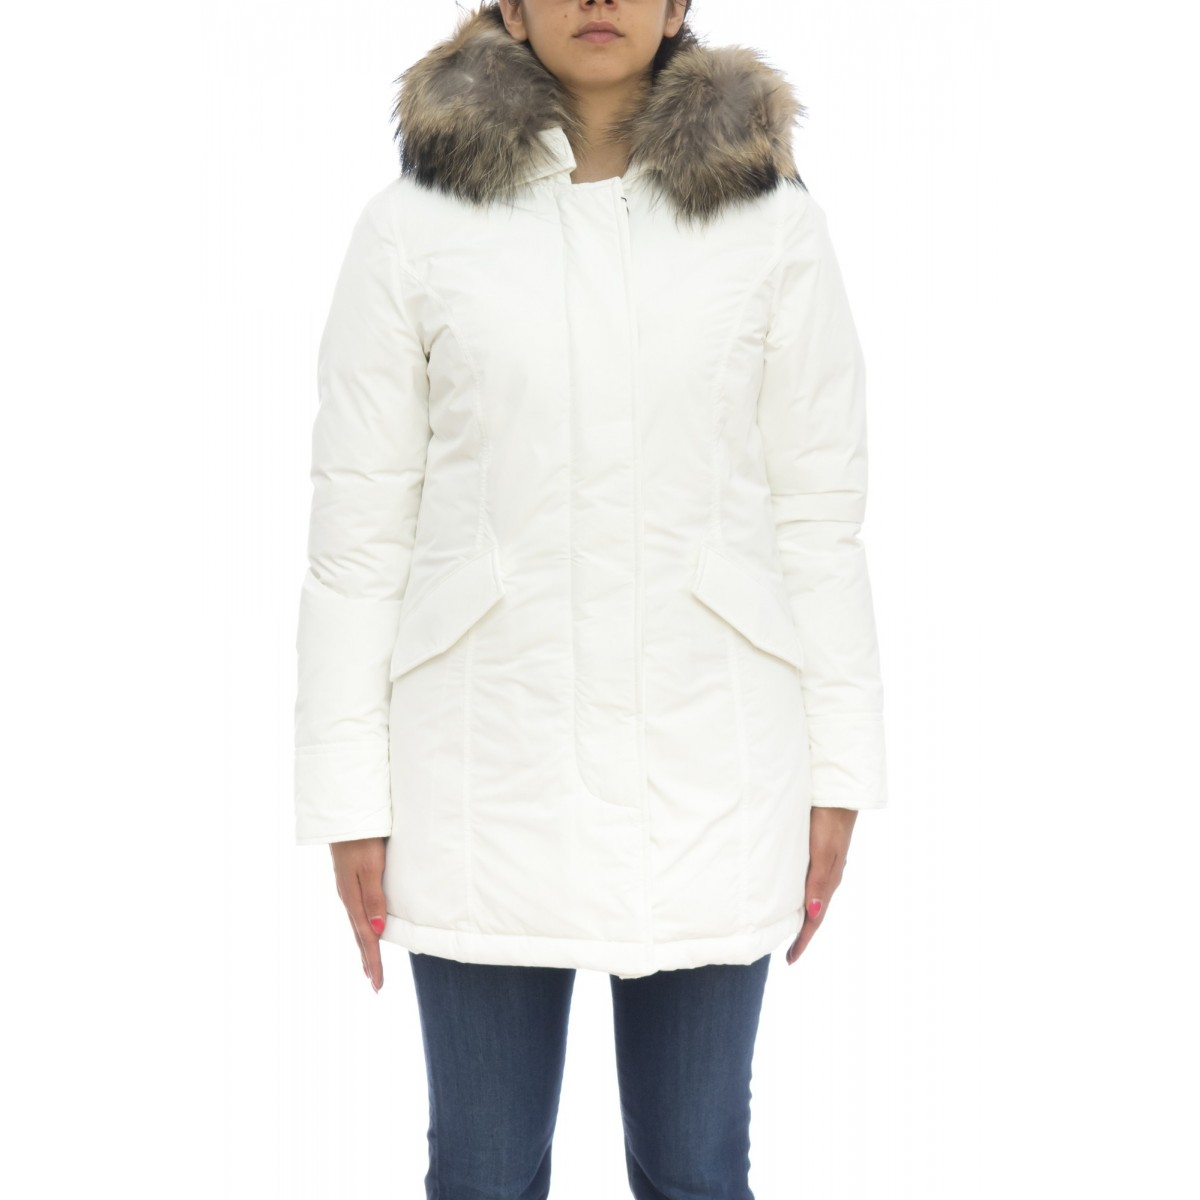 Piumino - Wwcps2604 cf40 new luxury artic parka